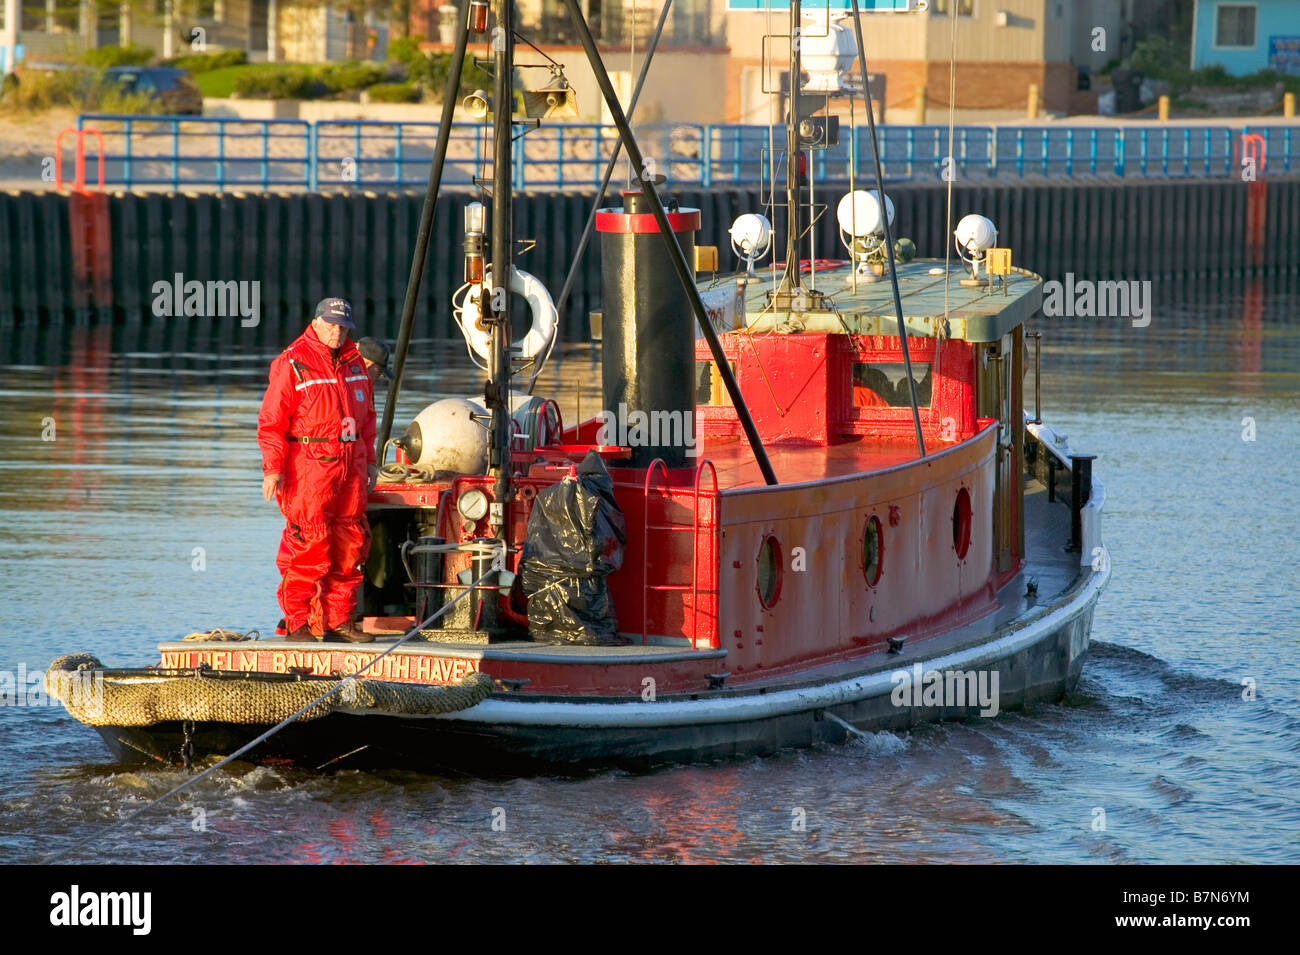 The historic tug Wilhelm Baum tows a stranded boat into South Haven Michigan - Stock Image